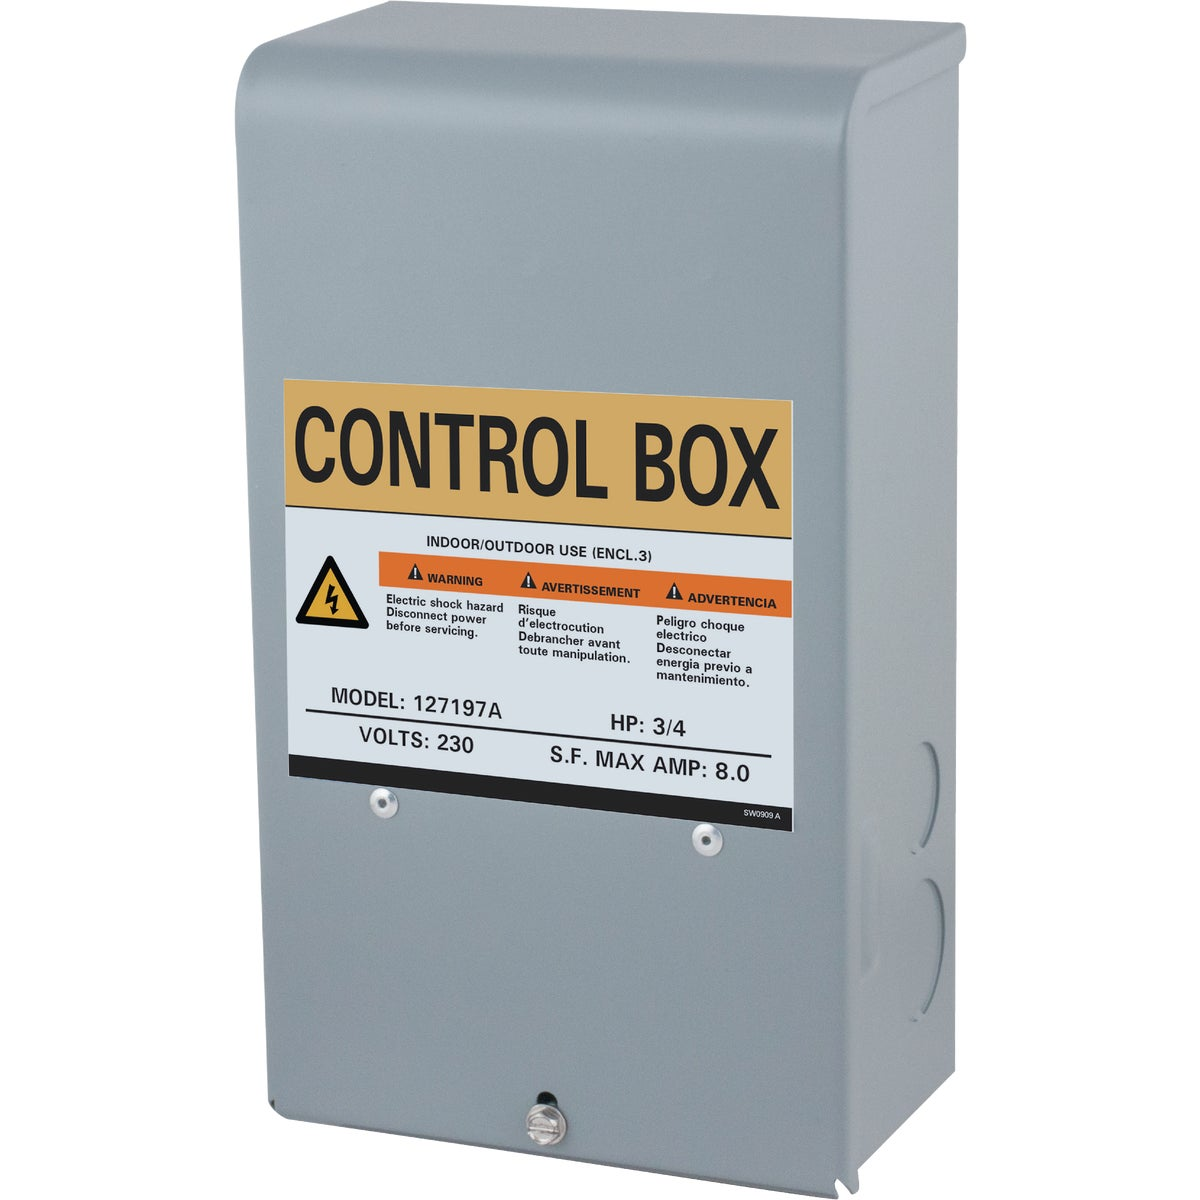 3/4HP 230V CONTROL BOX - 127197 by Star Water Systems